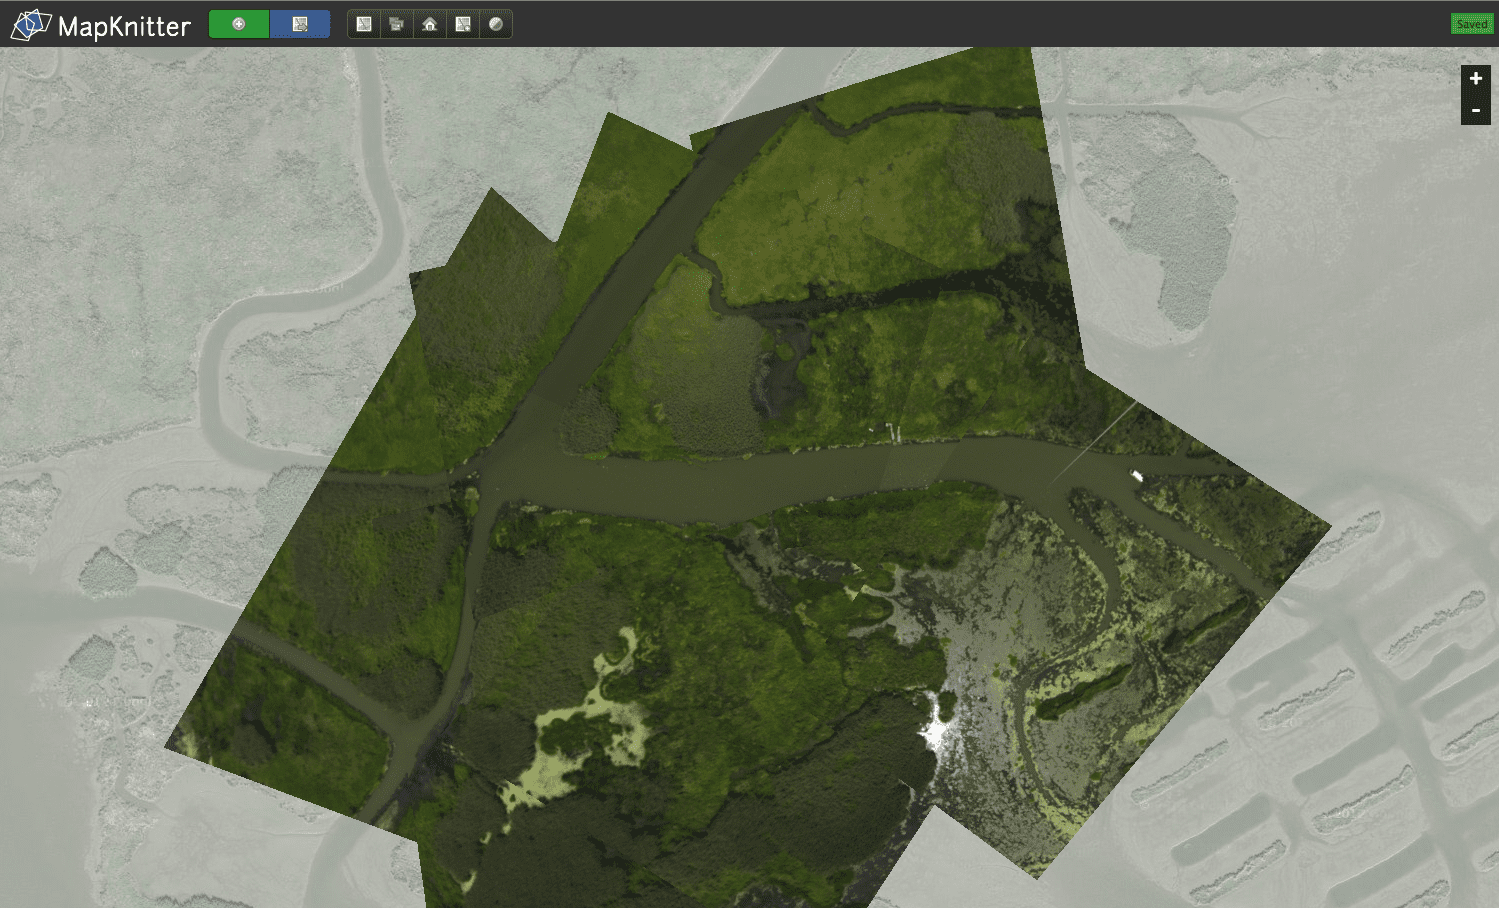 Public Lab Leads Mapping Blitz In New Orleans Earth Imaging - Aerial mapping software